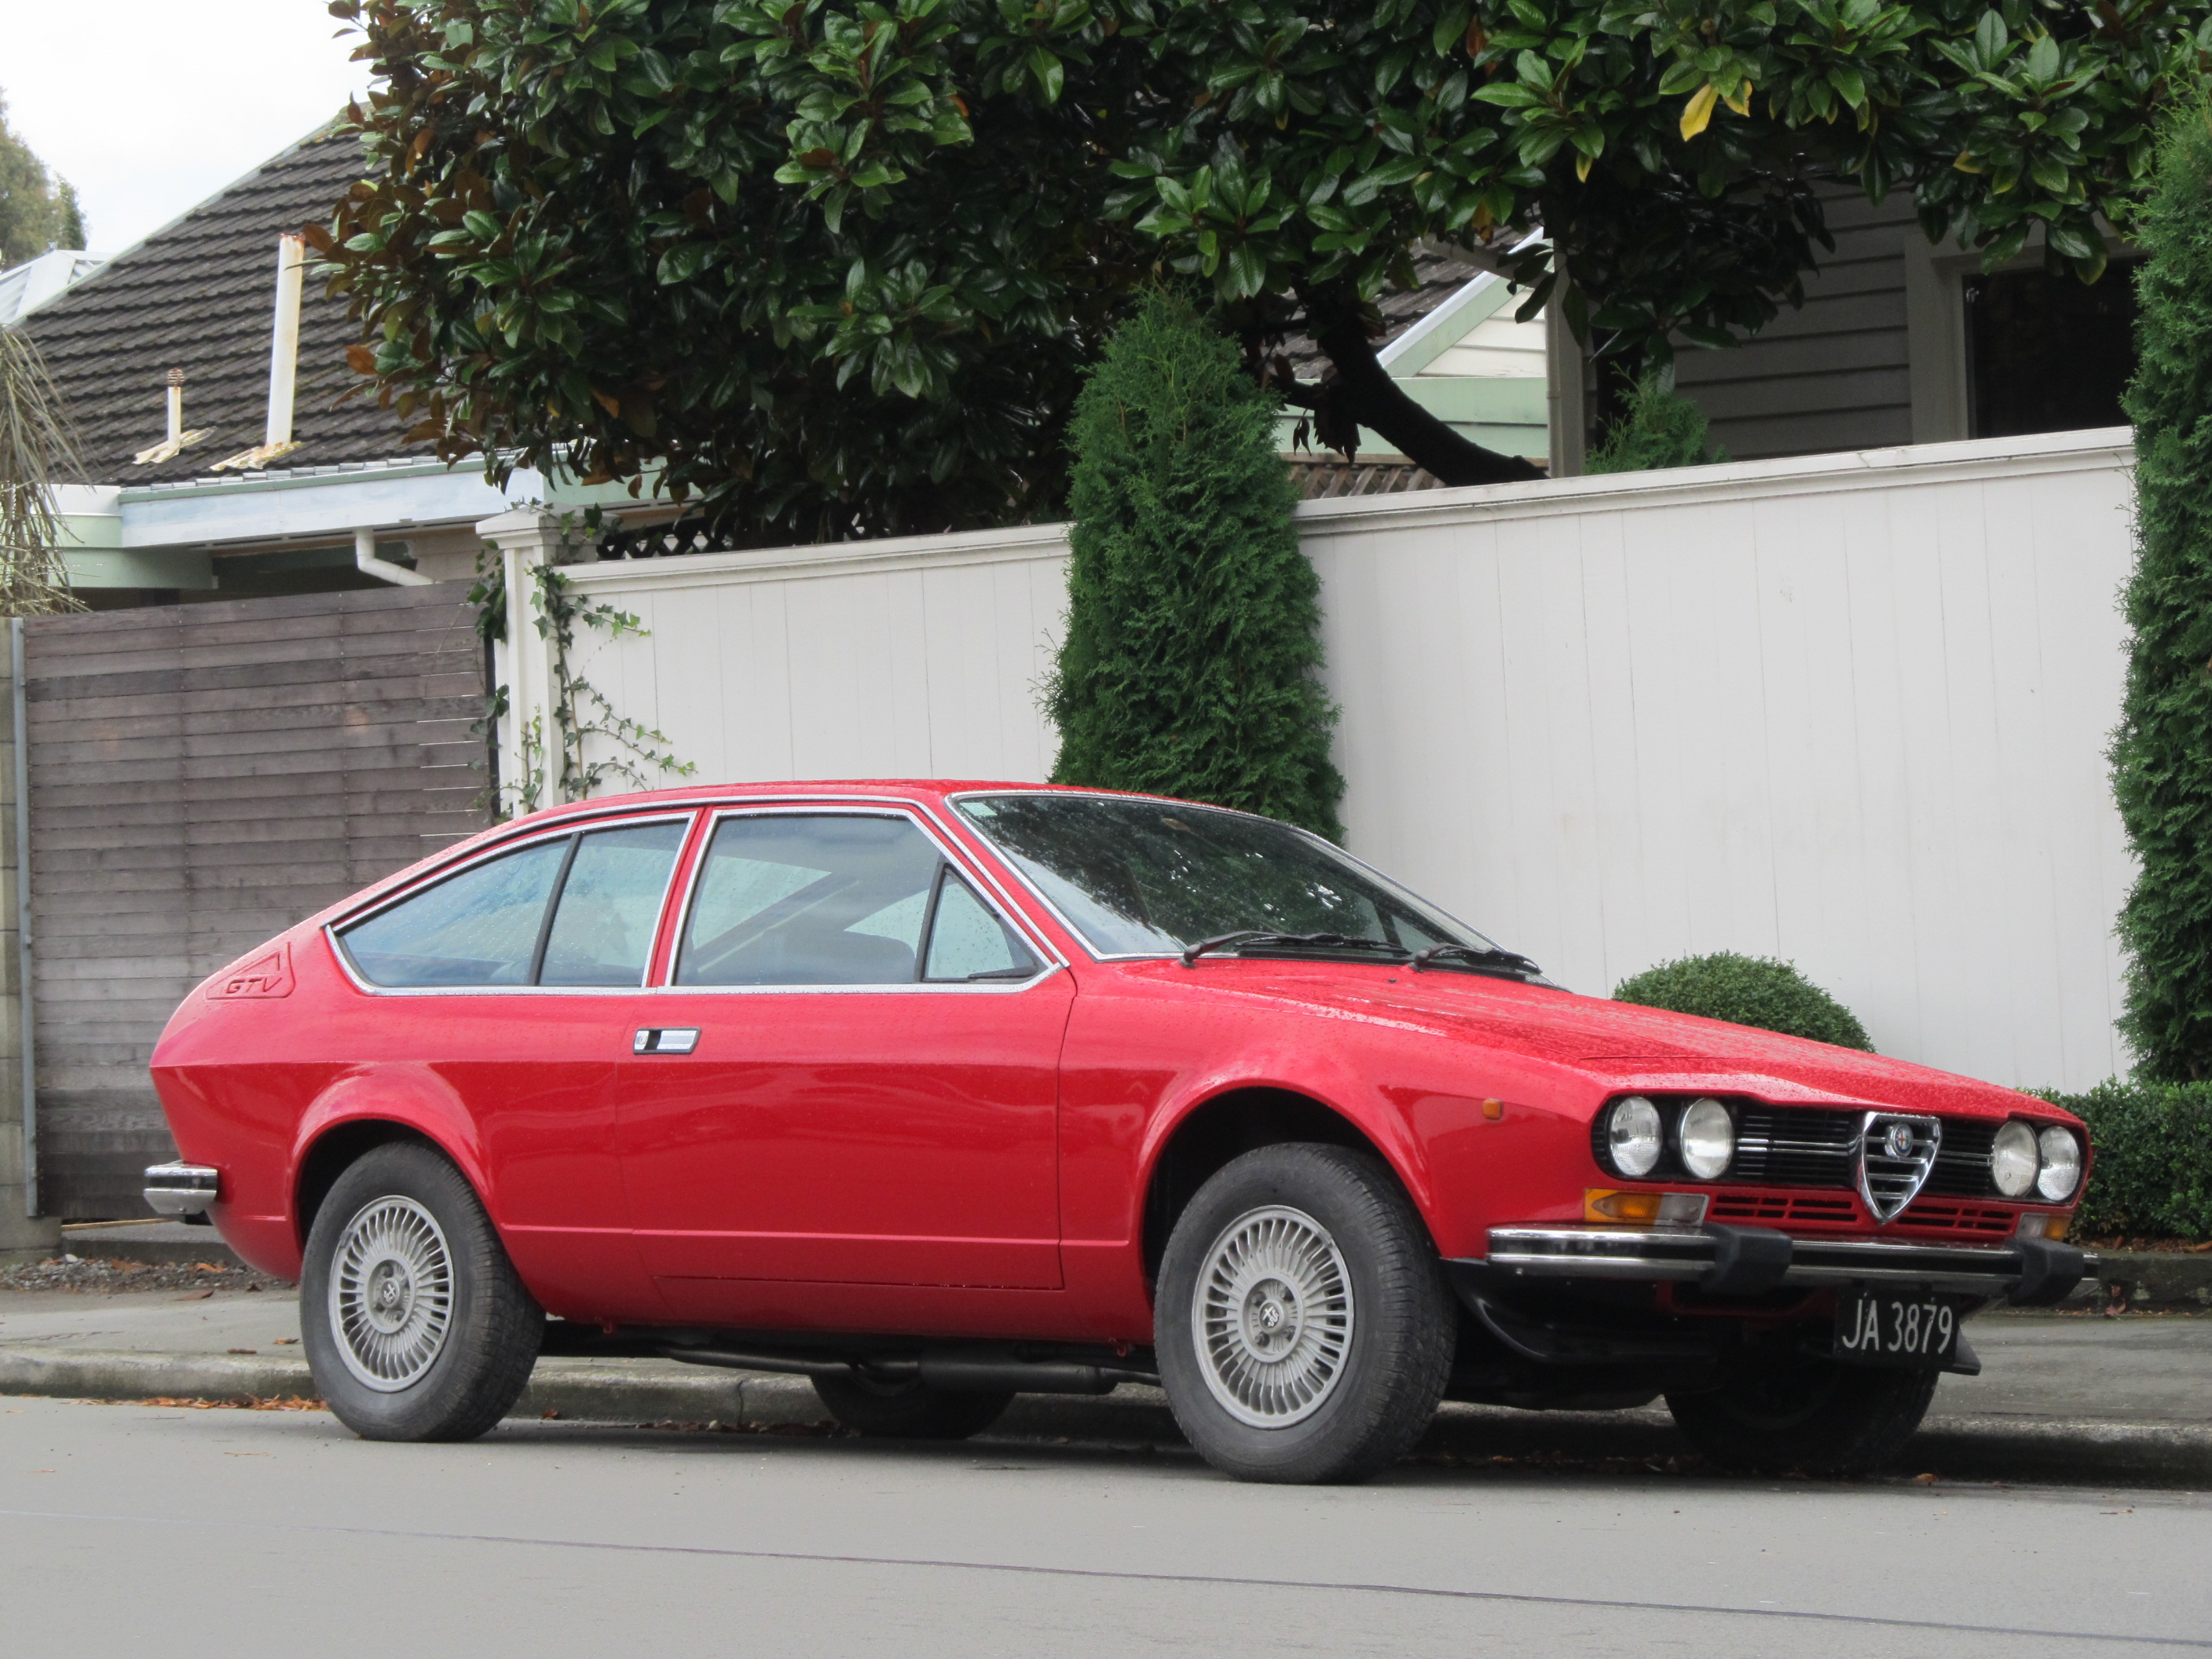 Alfa romeo 1750 gtv for sale south africa 12